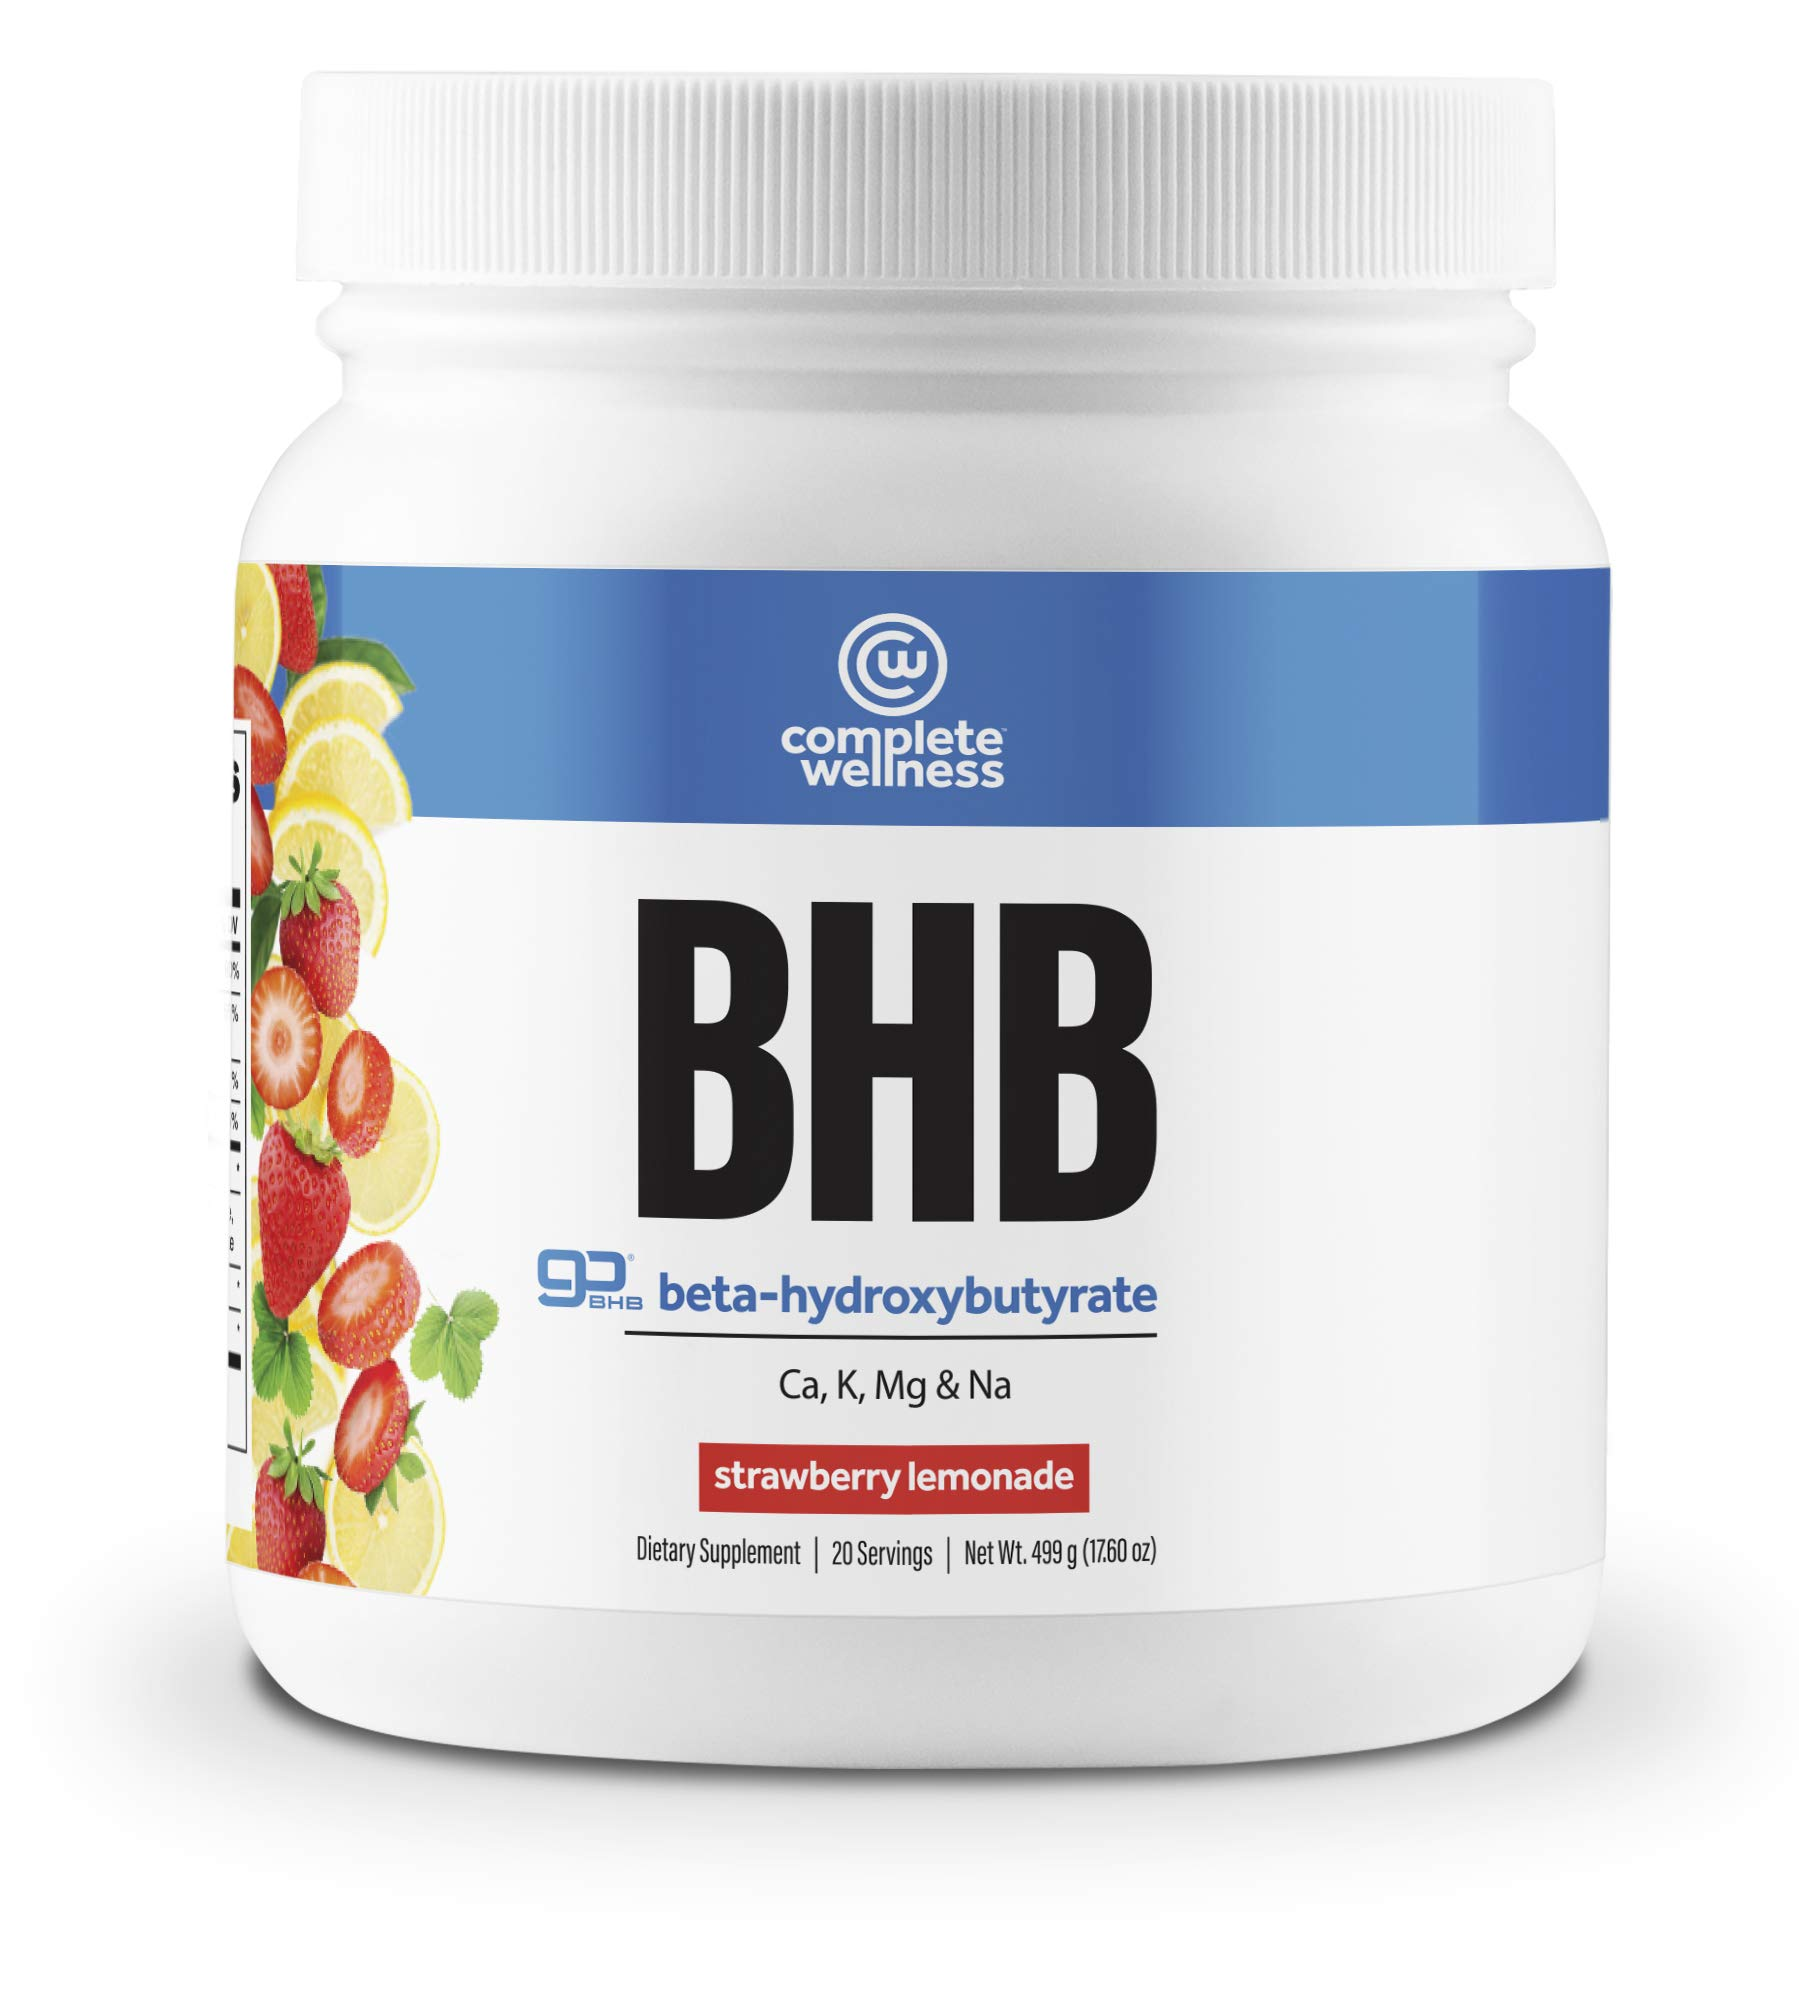 Complete Wellness BHB Beta-Hydroxybutyrate (Strawberry Lemonade) - 20 Servings - Great Supplement for Ketosis